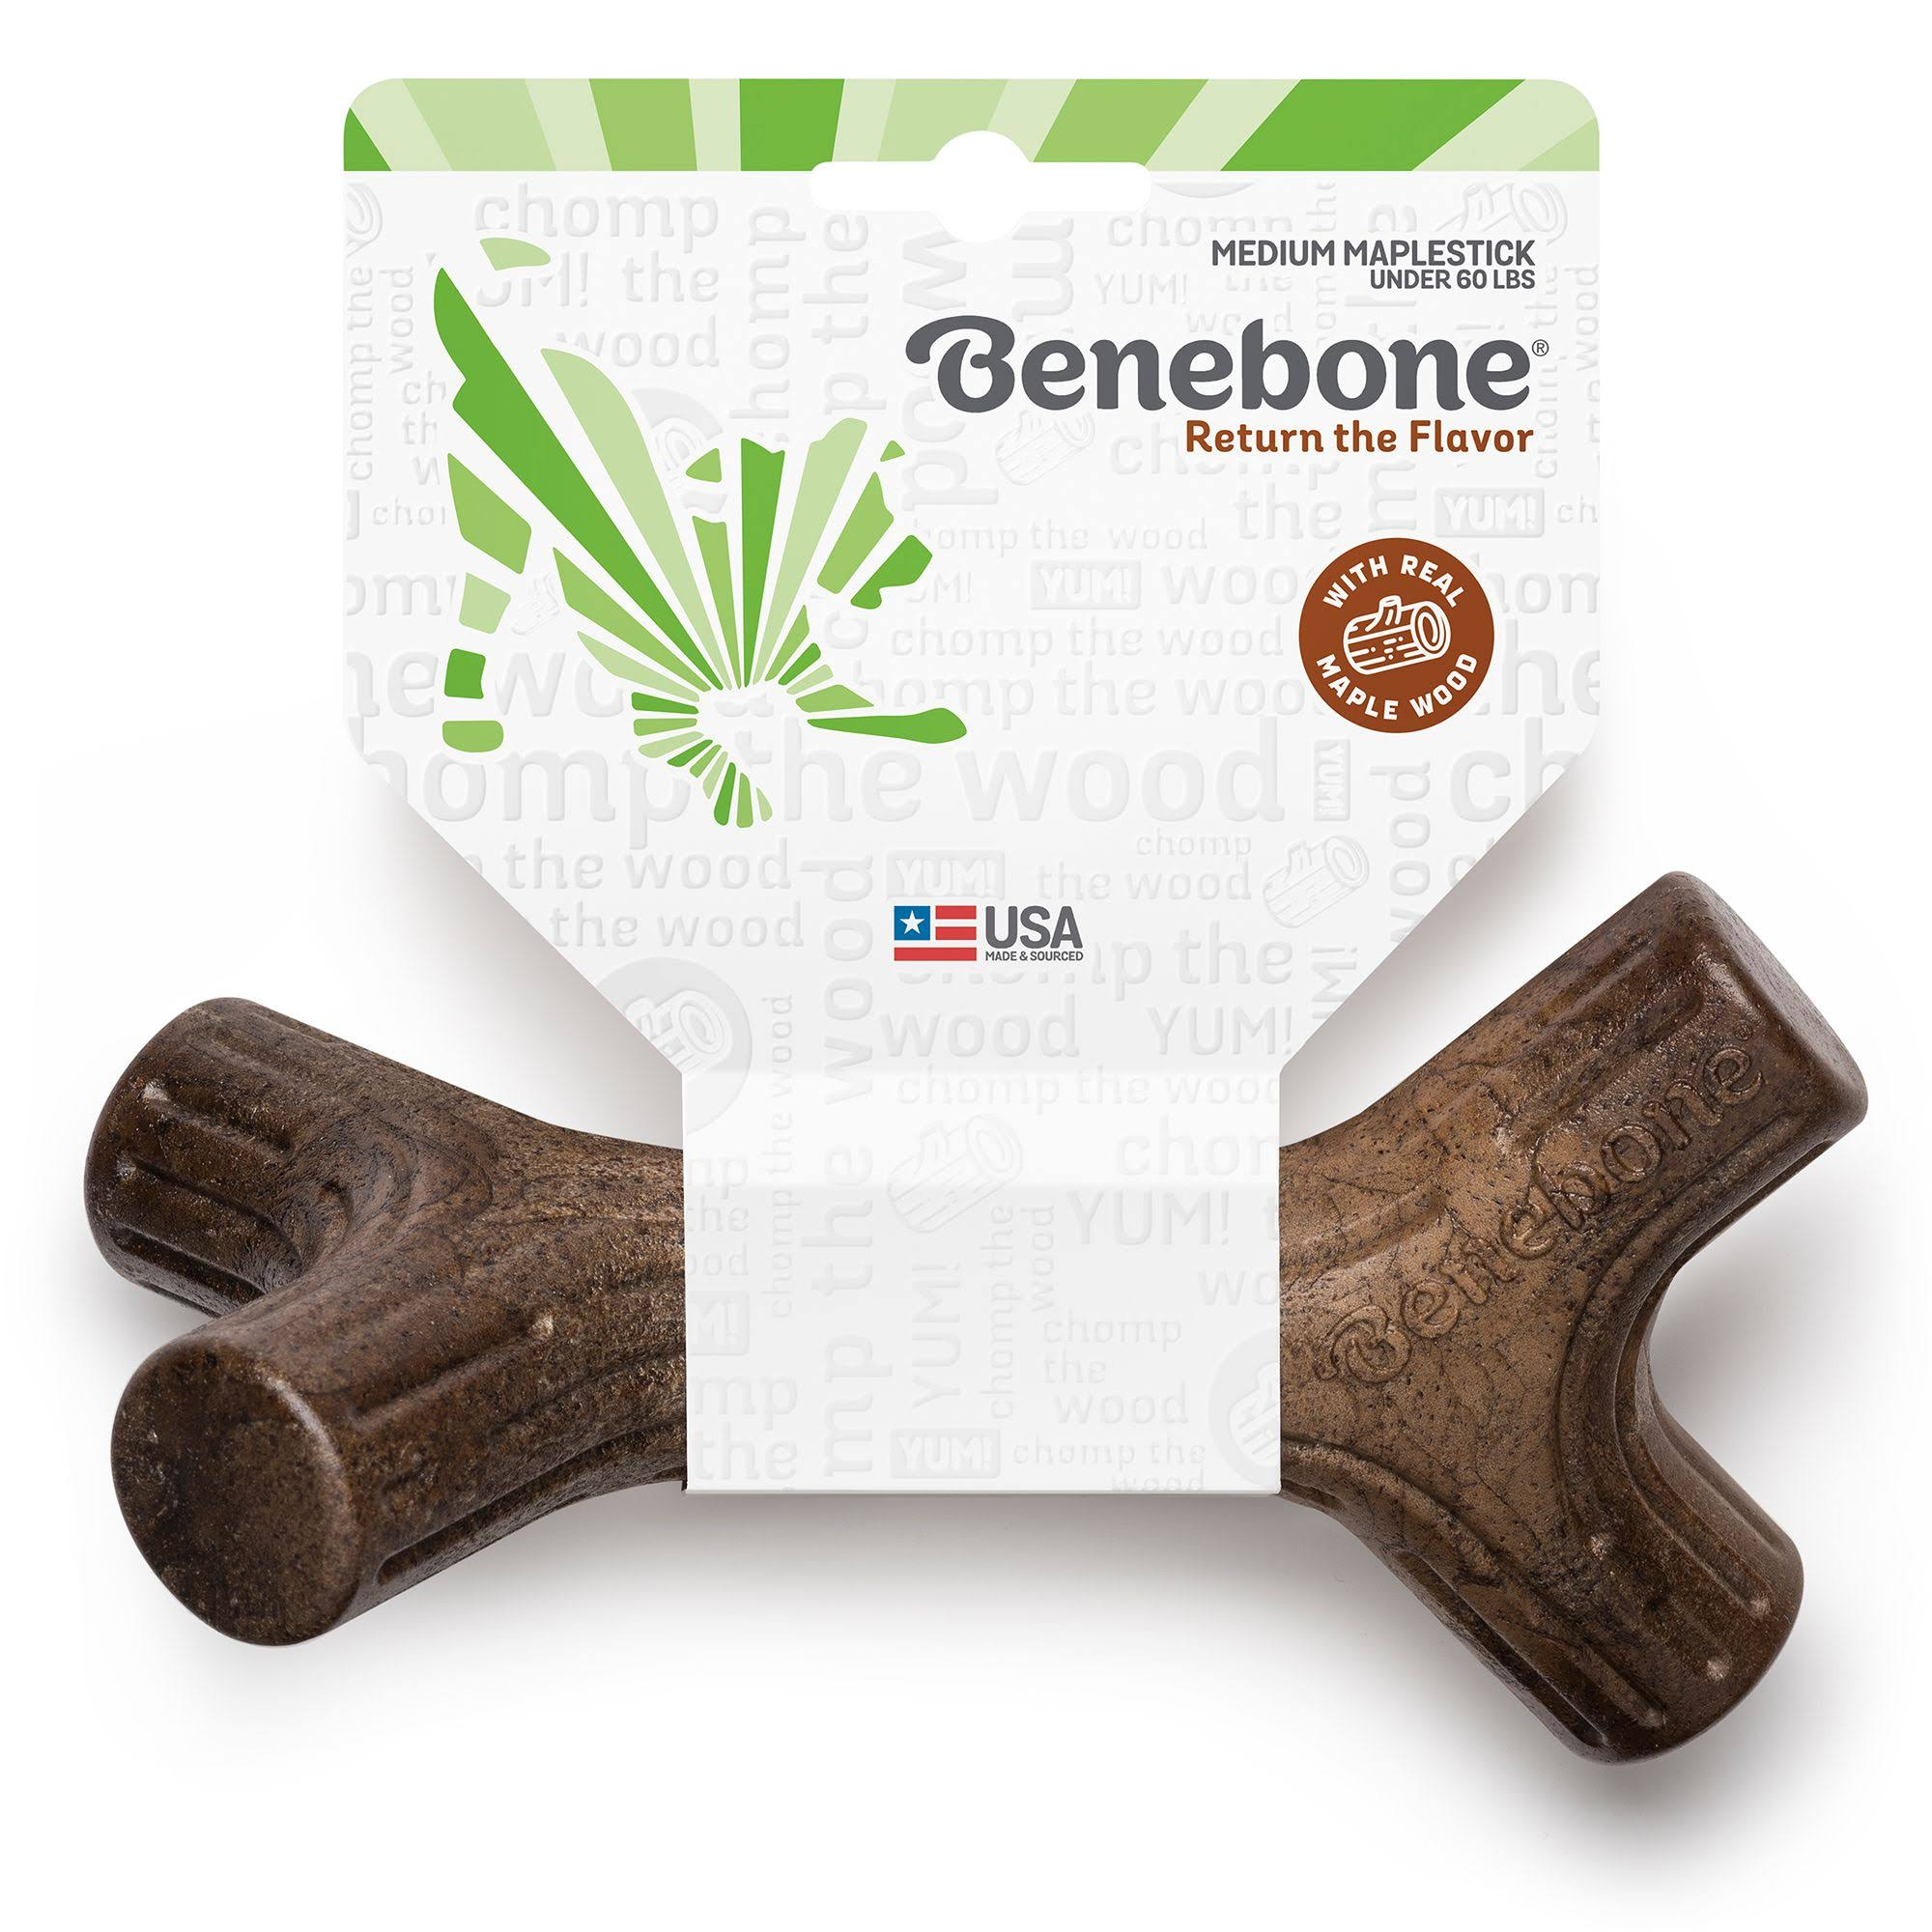 Benebone Maplestick Dog Chew Toy, Medium